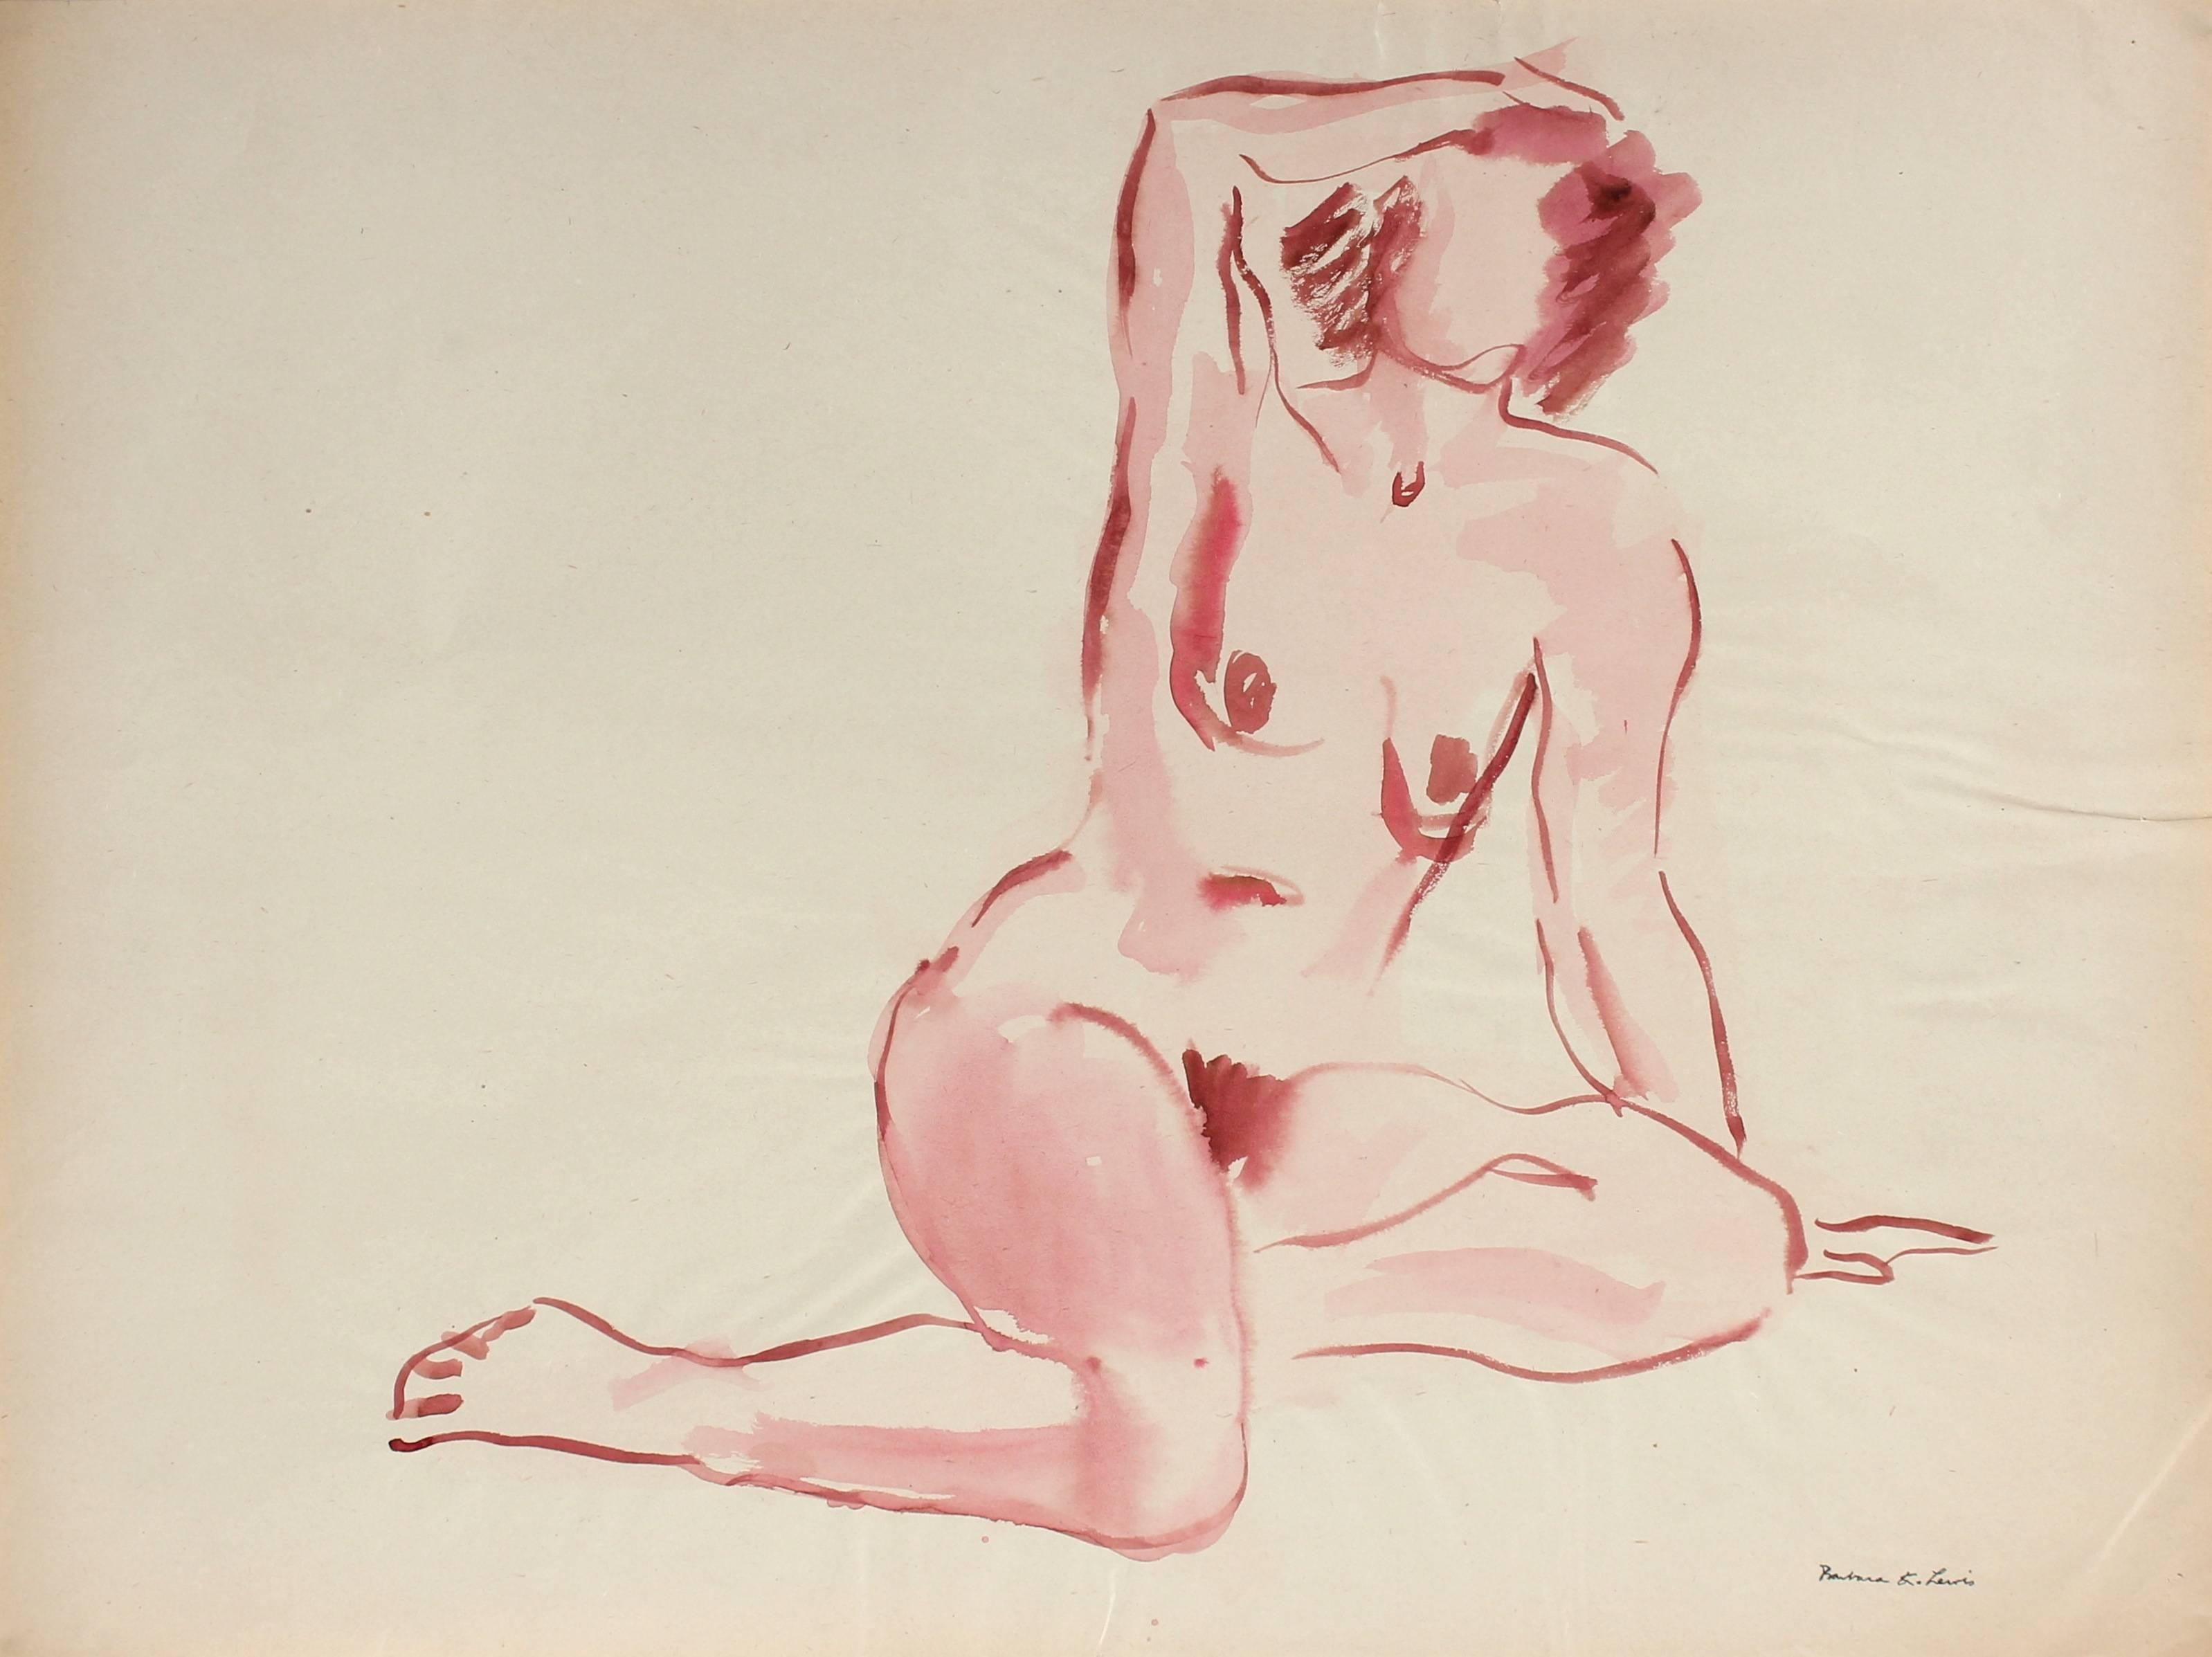 Soft Figure in Pink, Watercolor Painting, Circa 1940s